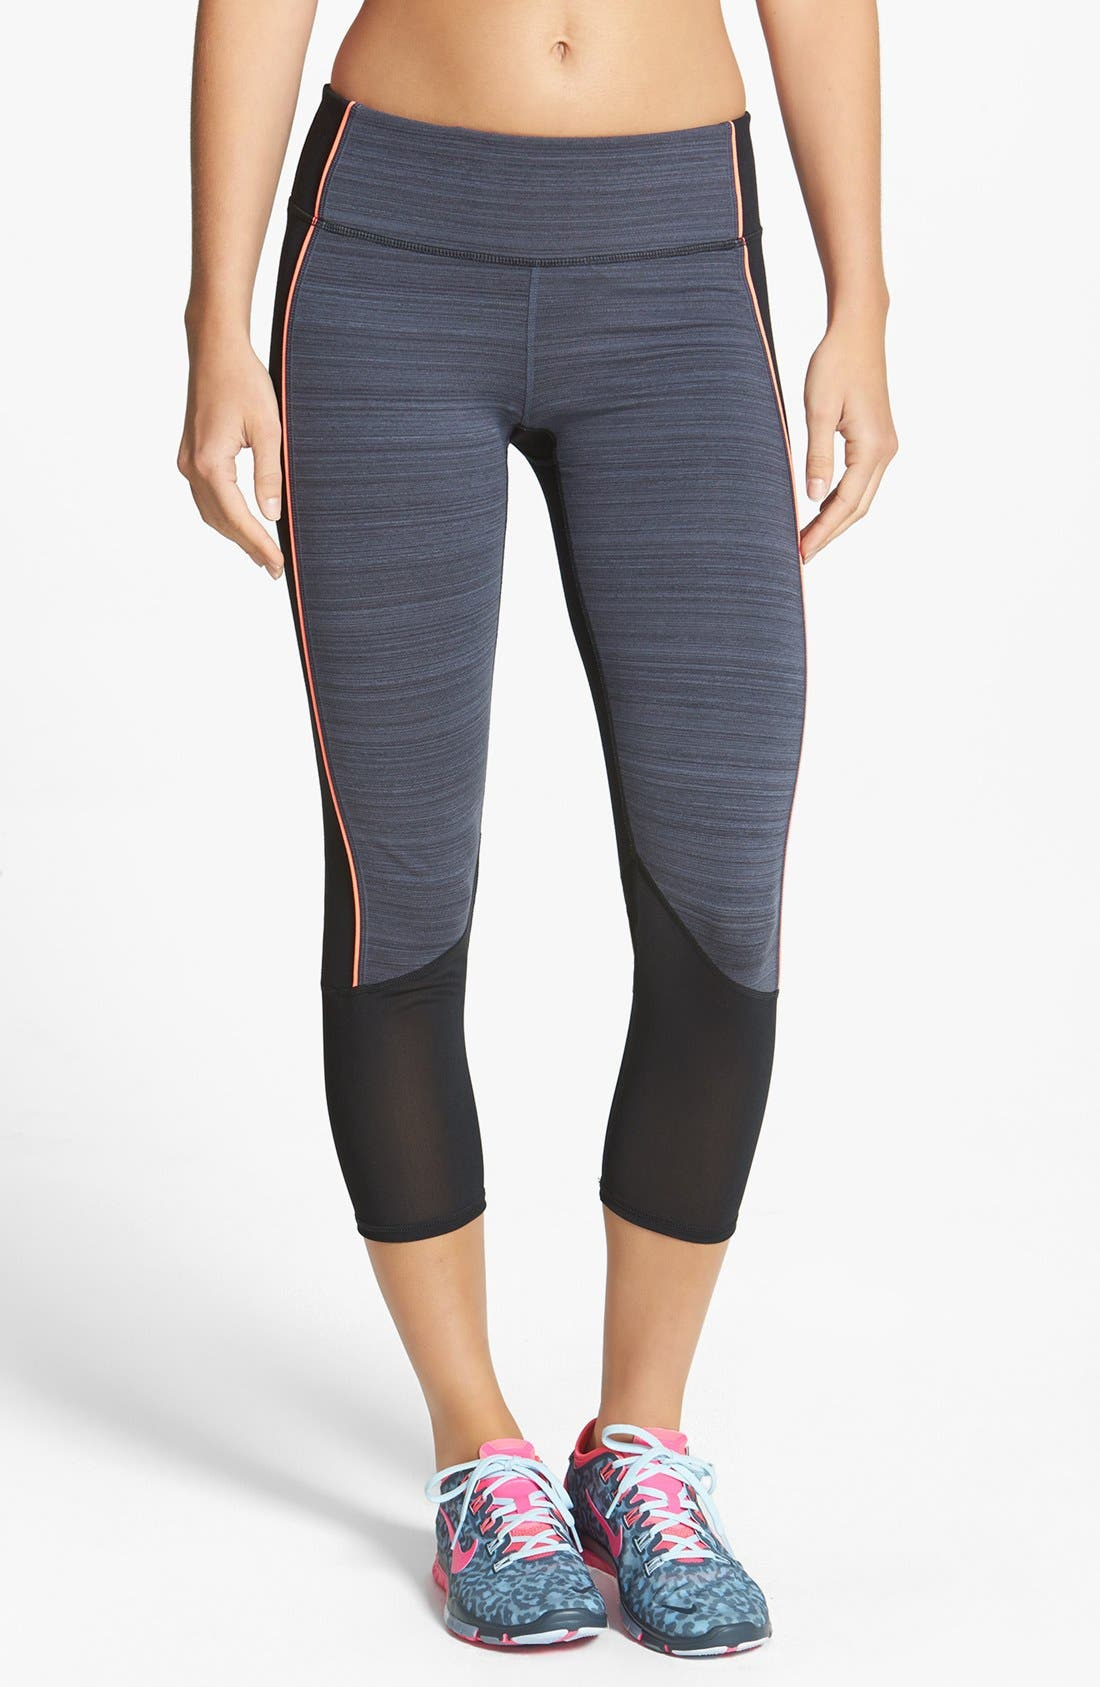 Main Image - Zella 'Live In - Triple Play Horizon' Colorblock Capris